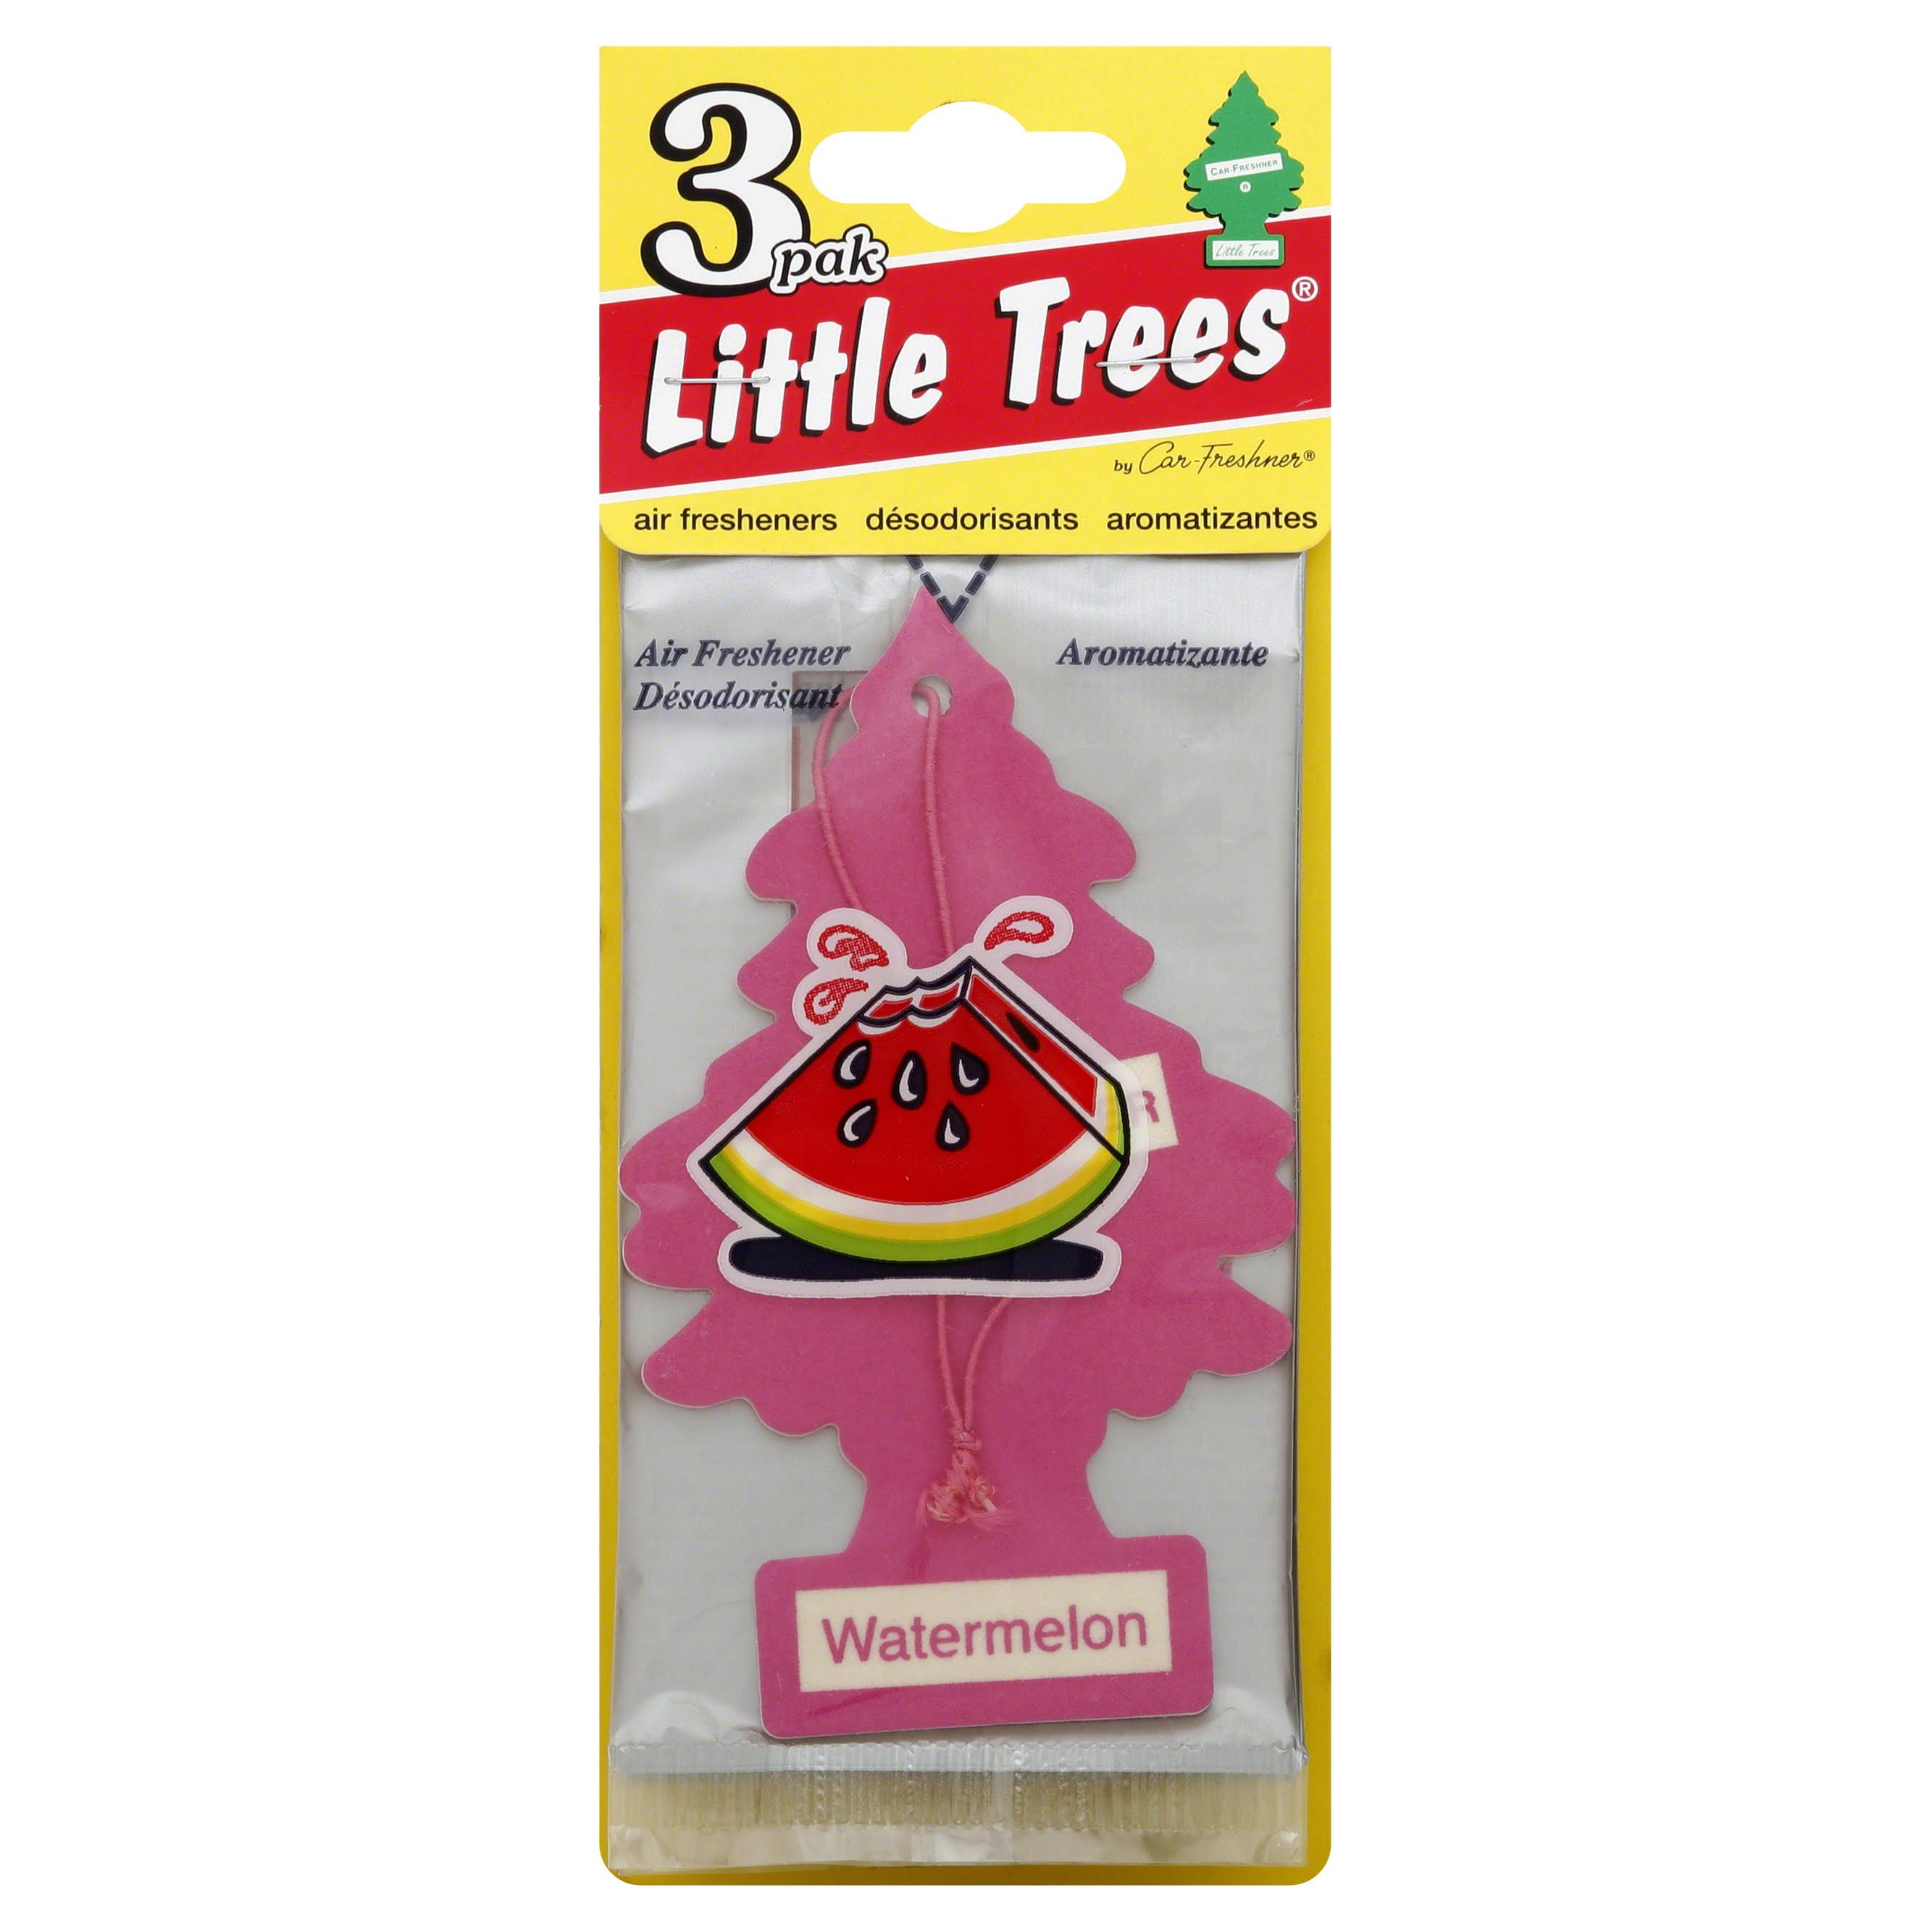 Little Trees Air Freshener - Watermelon